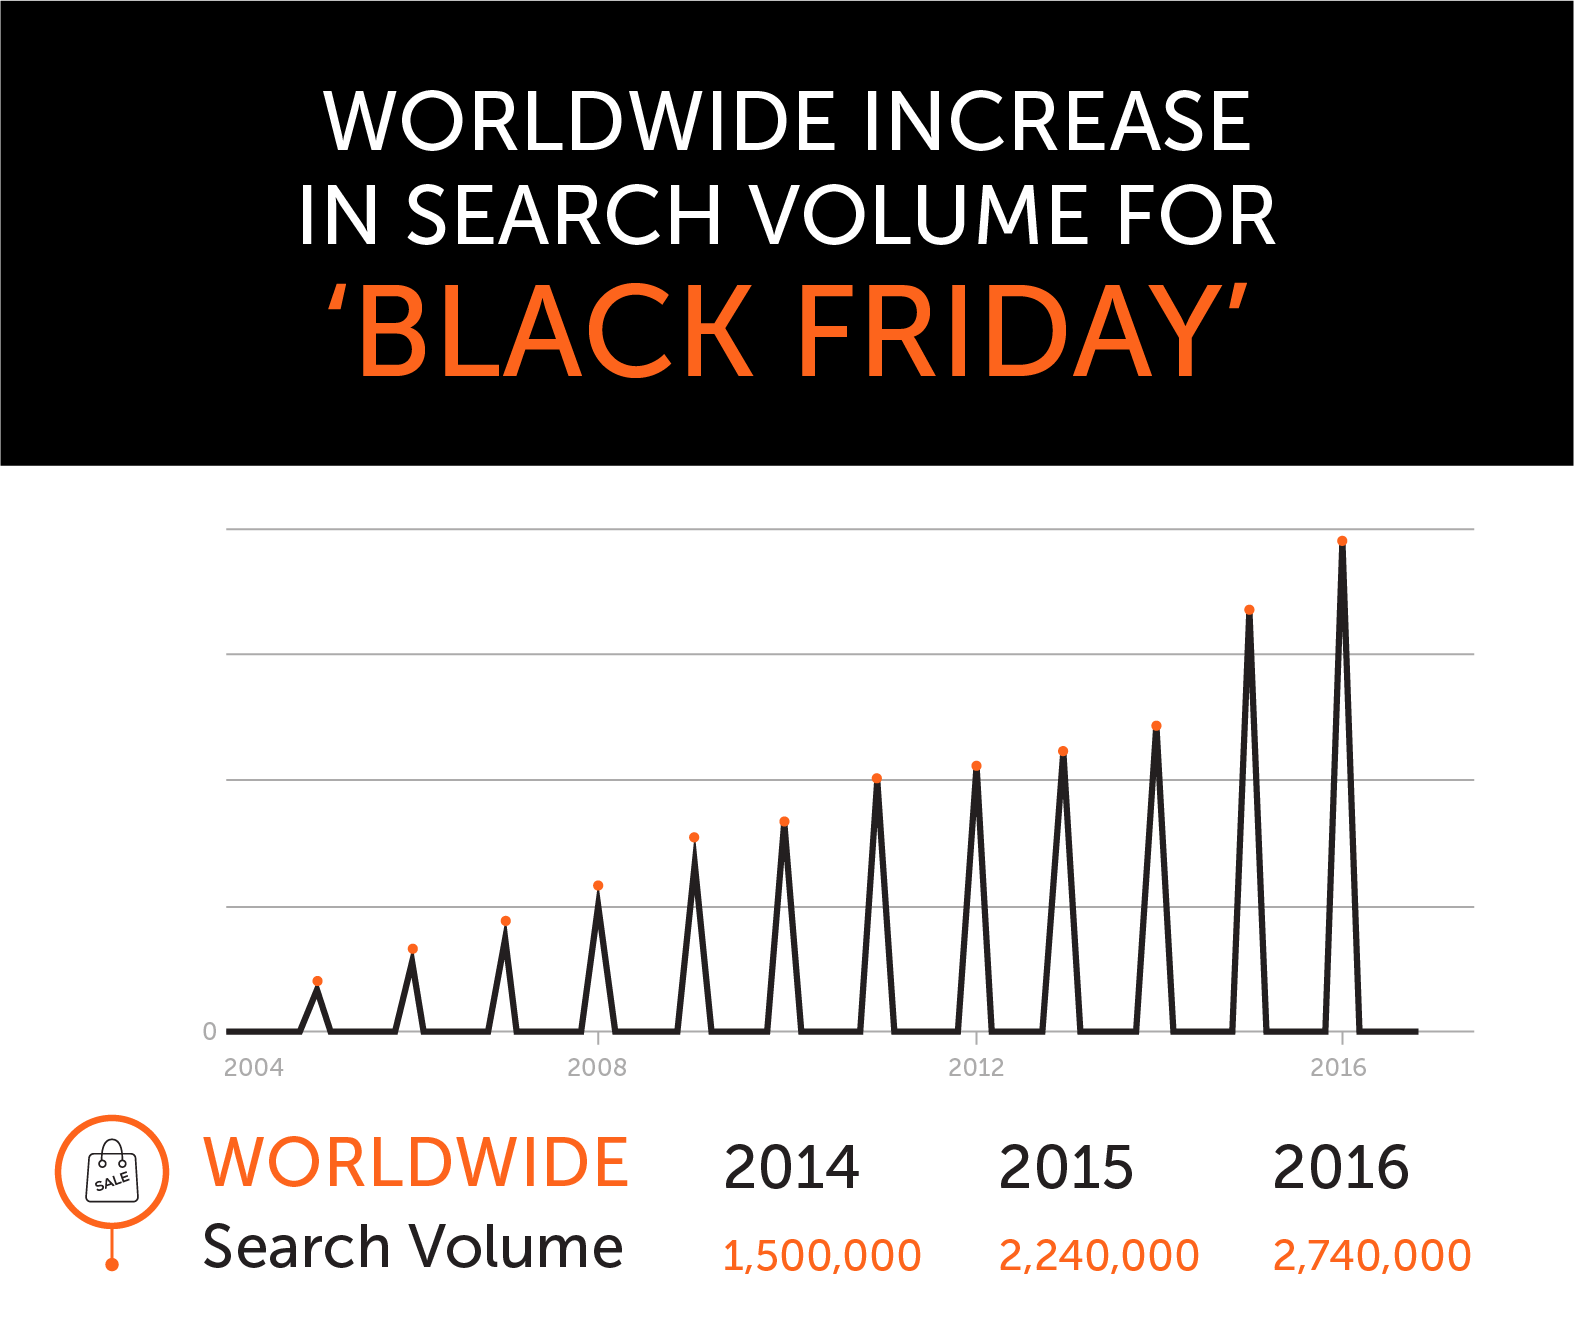 Worldwide increase in search volume